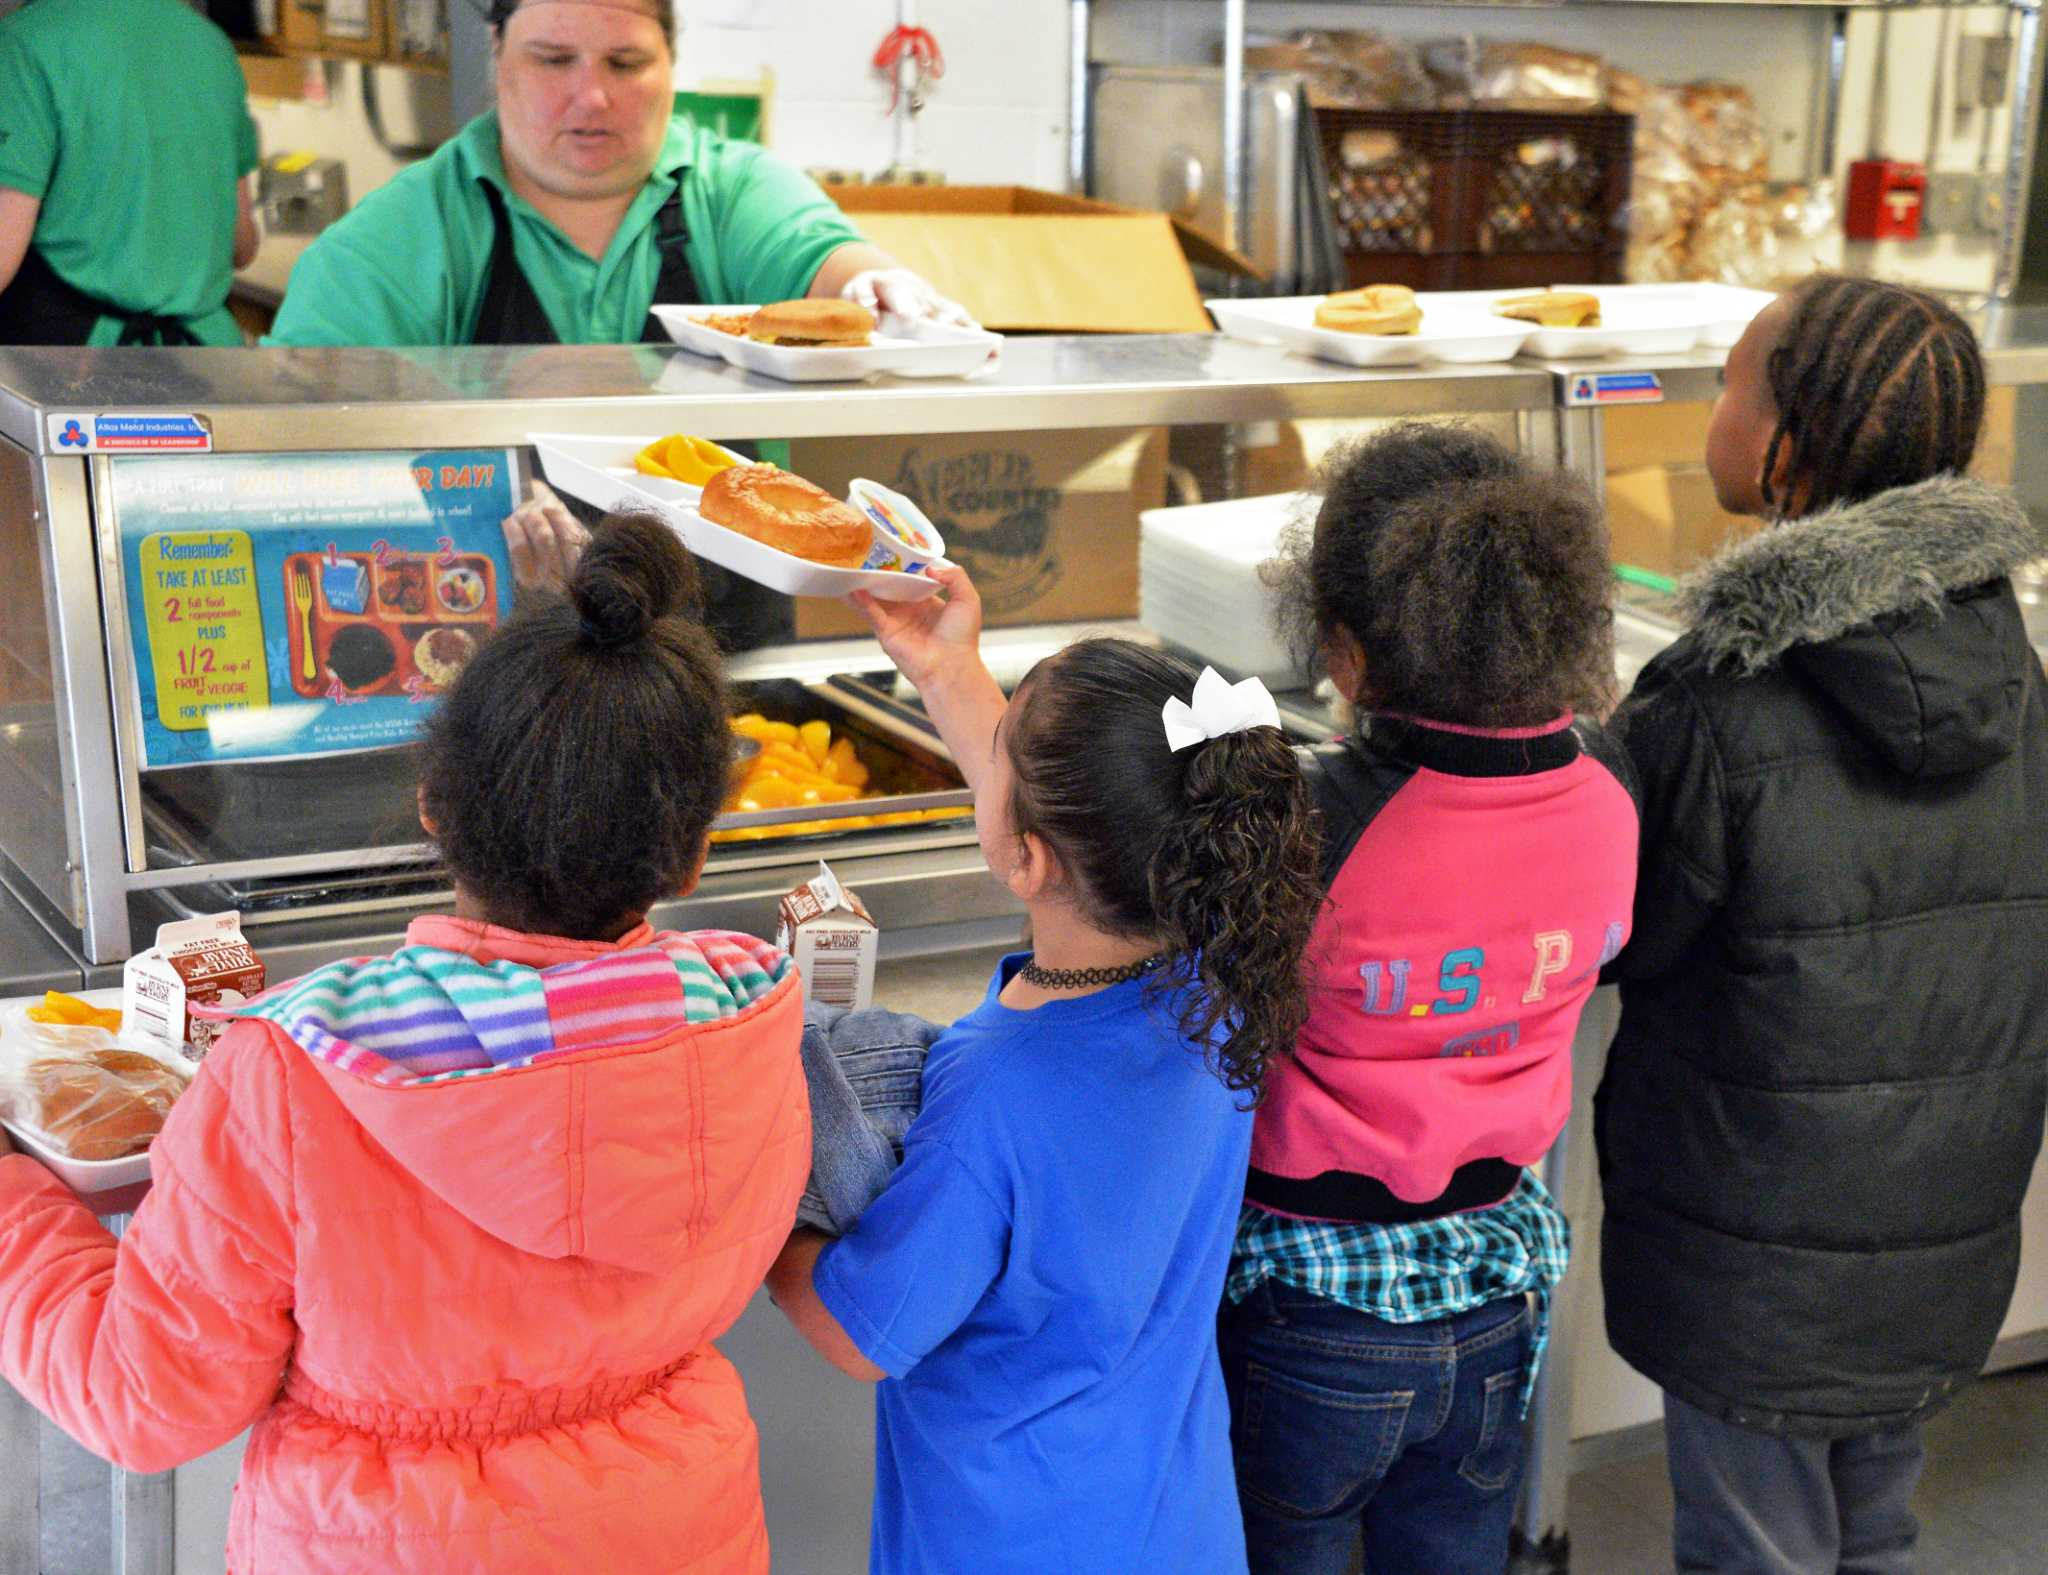 Shaming students who can't afford school lunch? It's more common than you'd think - Times Union